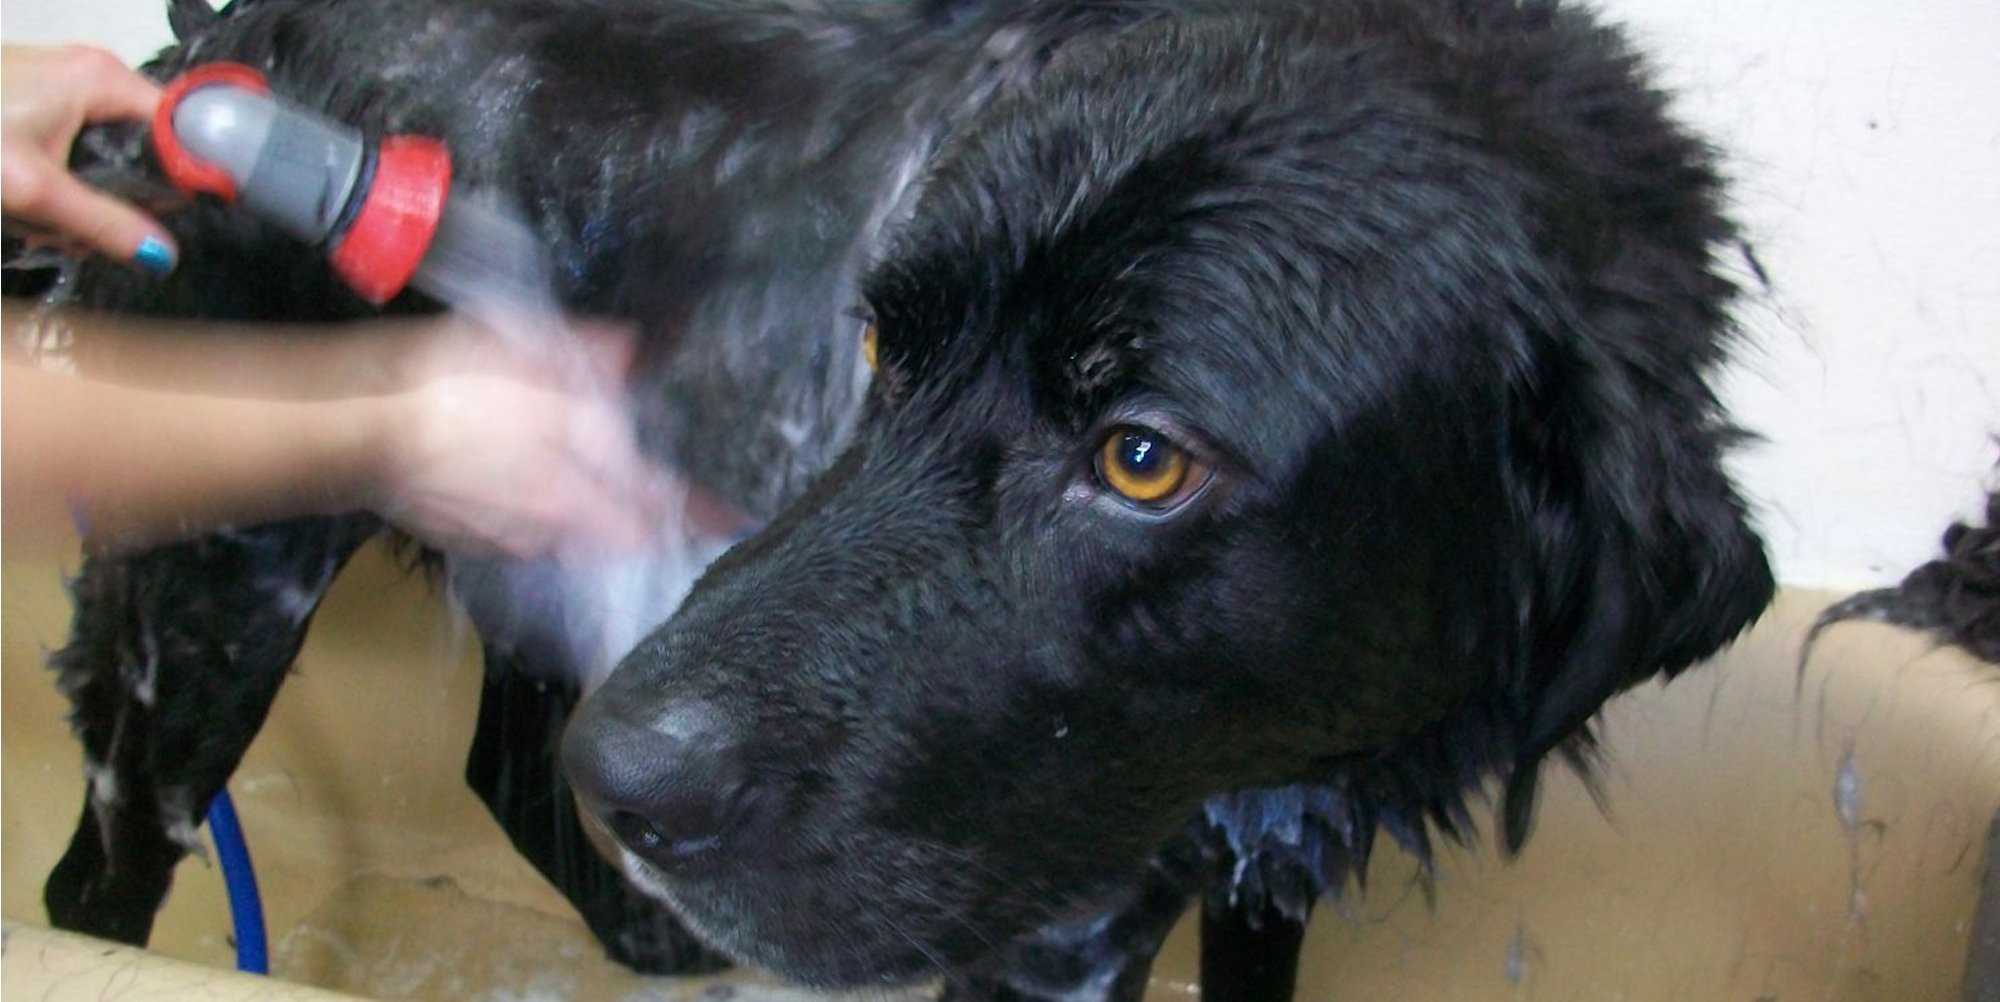 A dog receiving pet grooming services in Palmer, AK